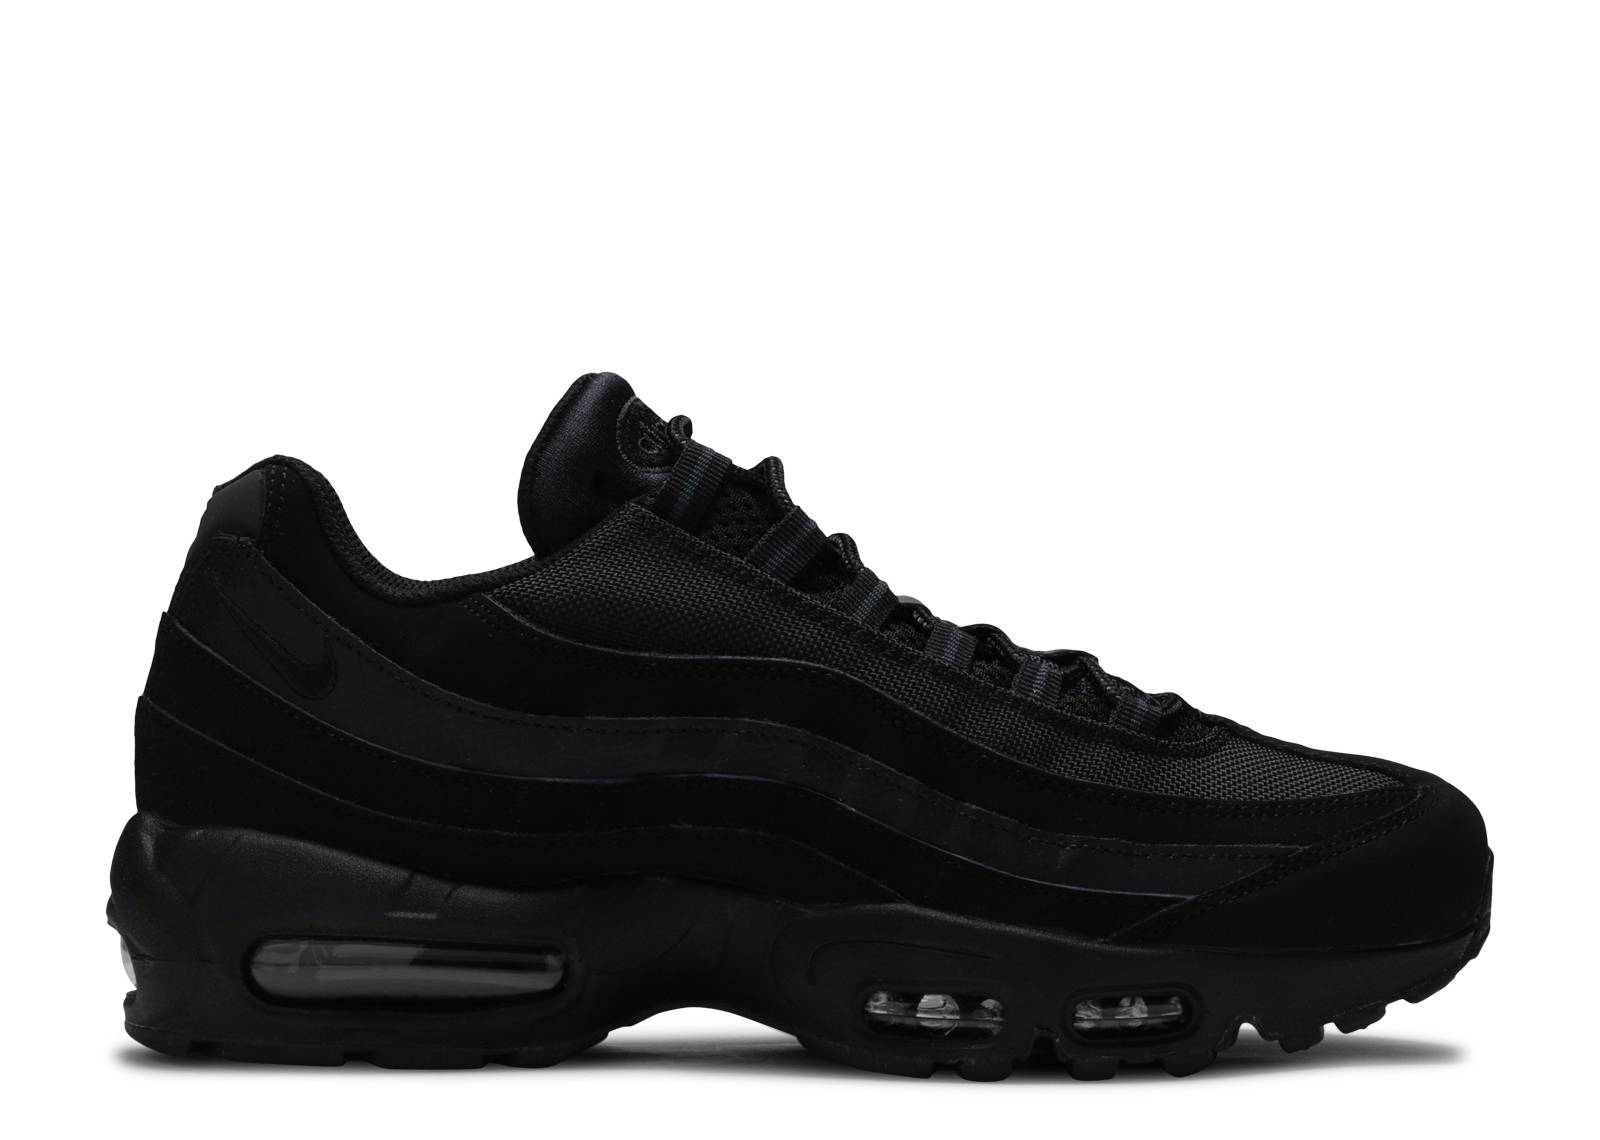 reputable site ca8d2 d48c0 Nike Air Max 95 - Mens  Womens Shoes  Flight Club